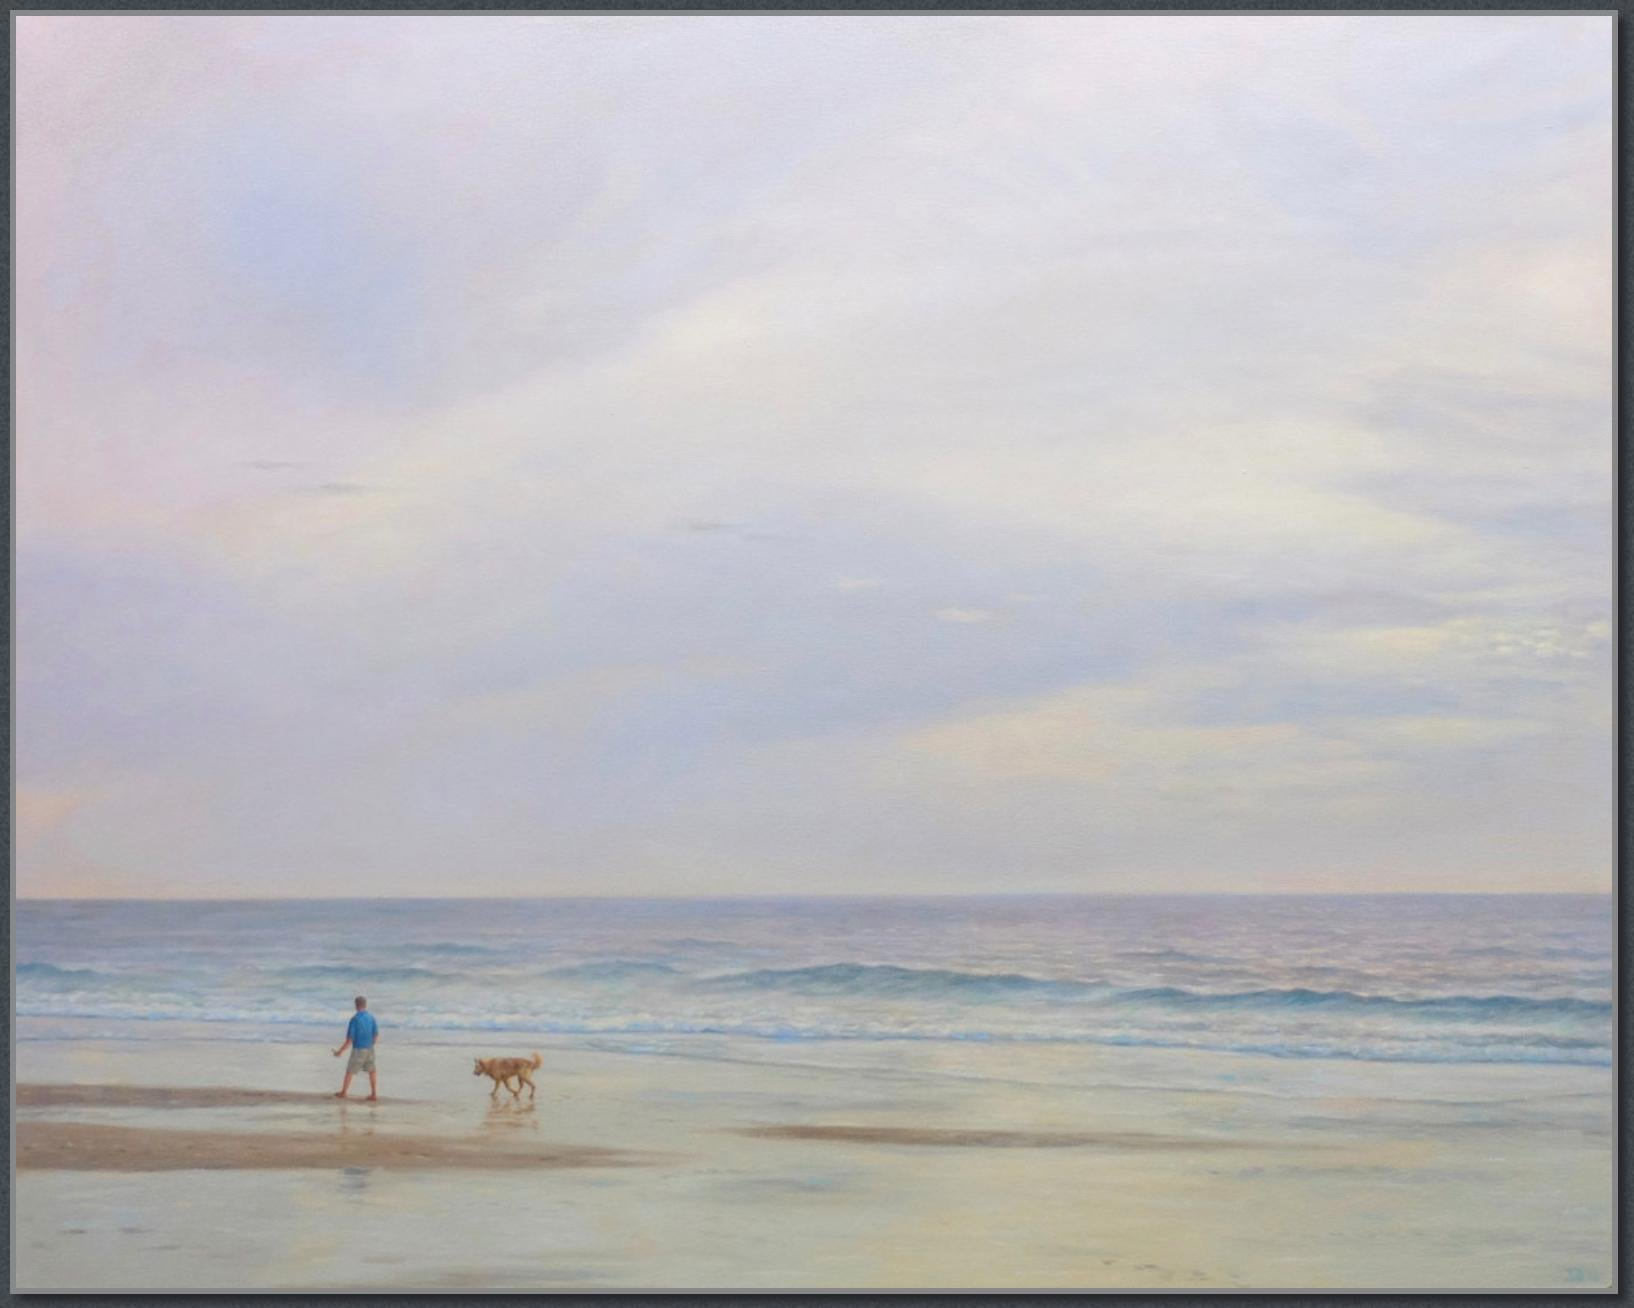 Beach Walk / American Realism figure with dog on beach at sunset